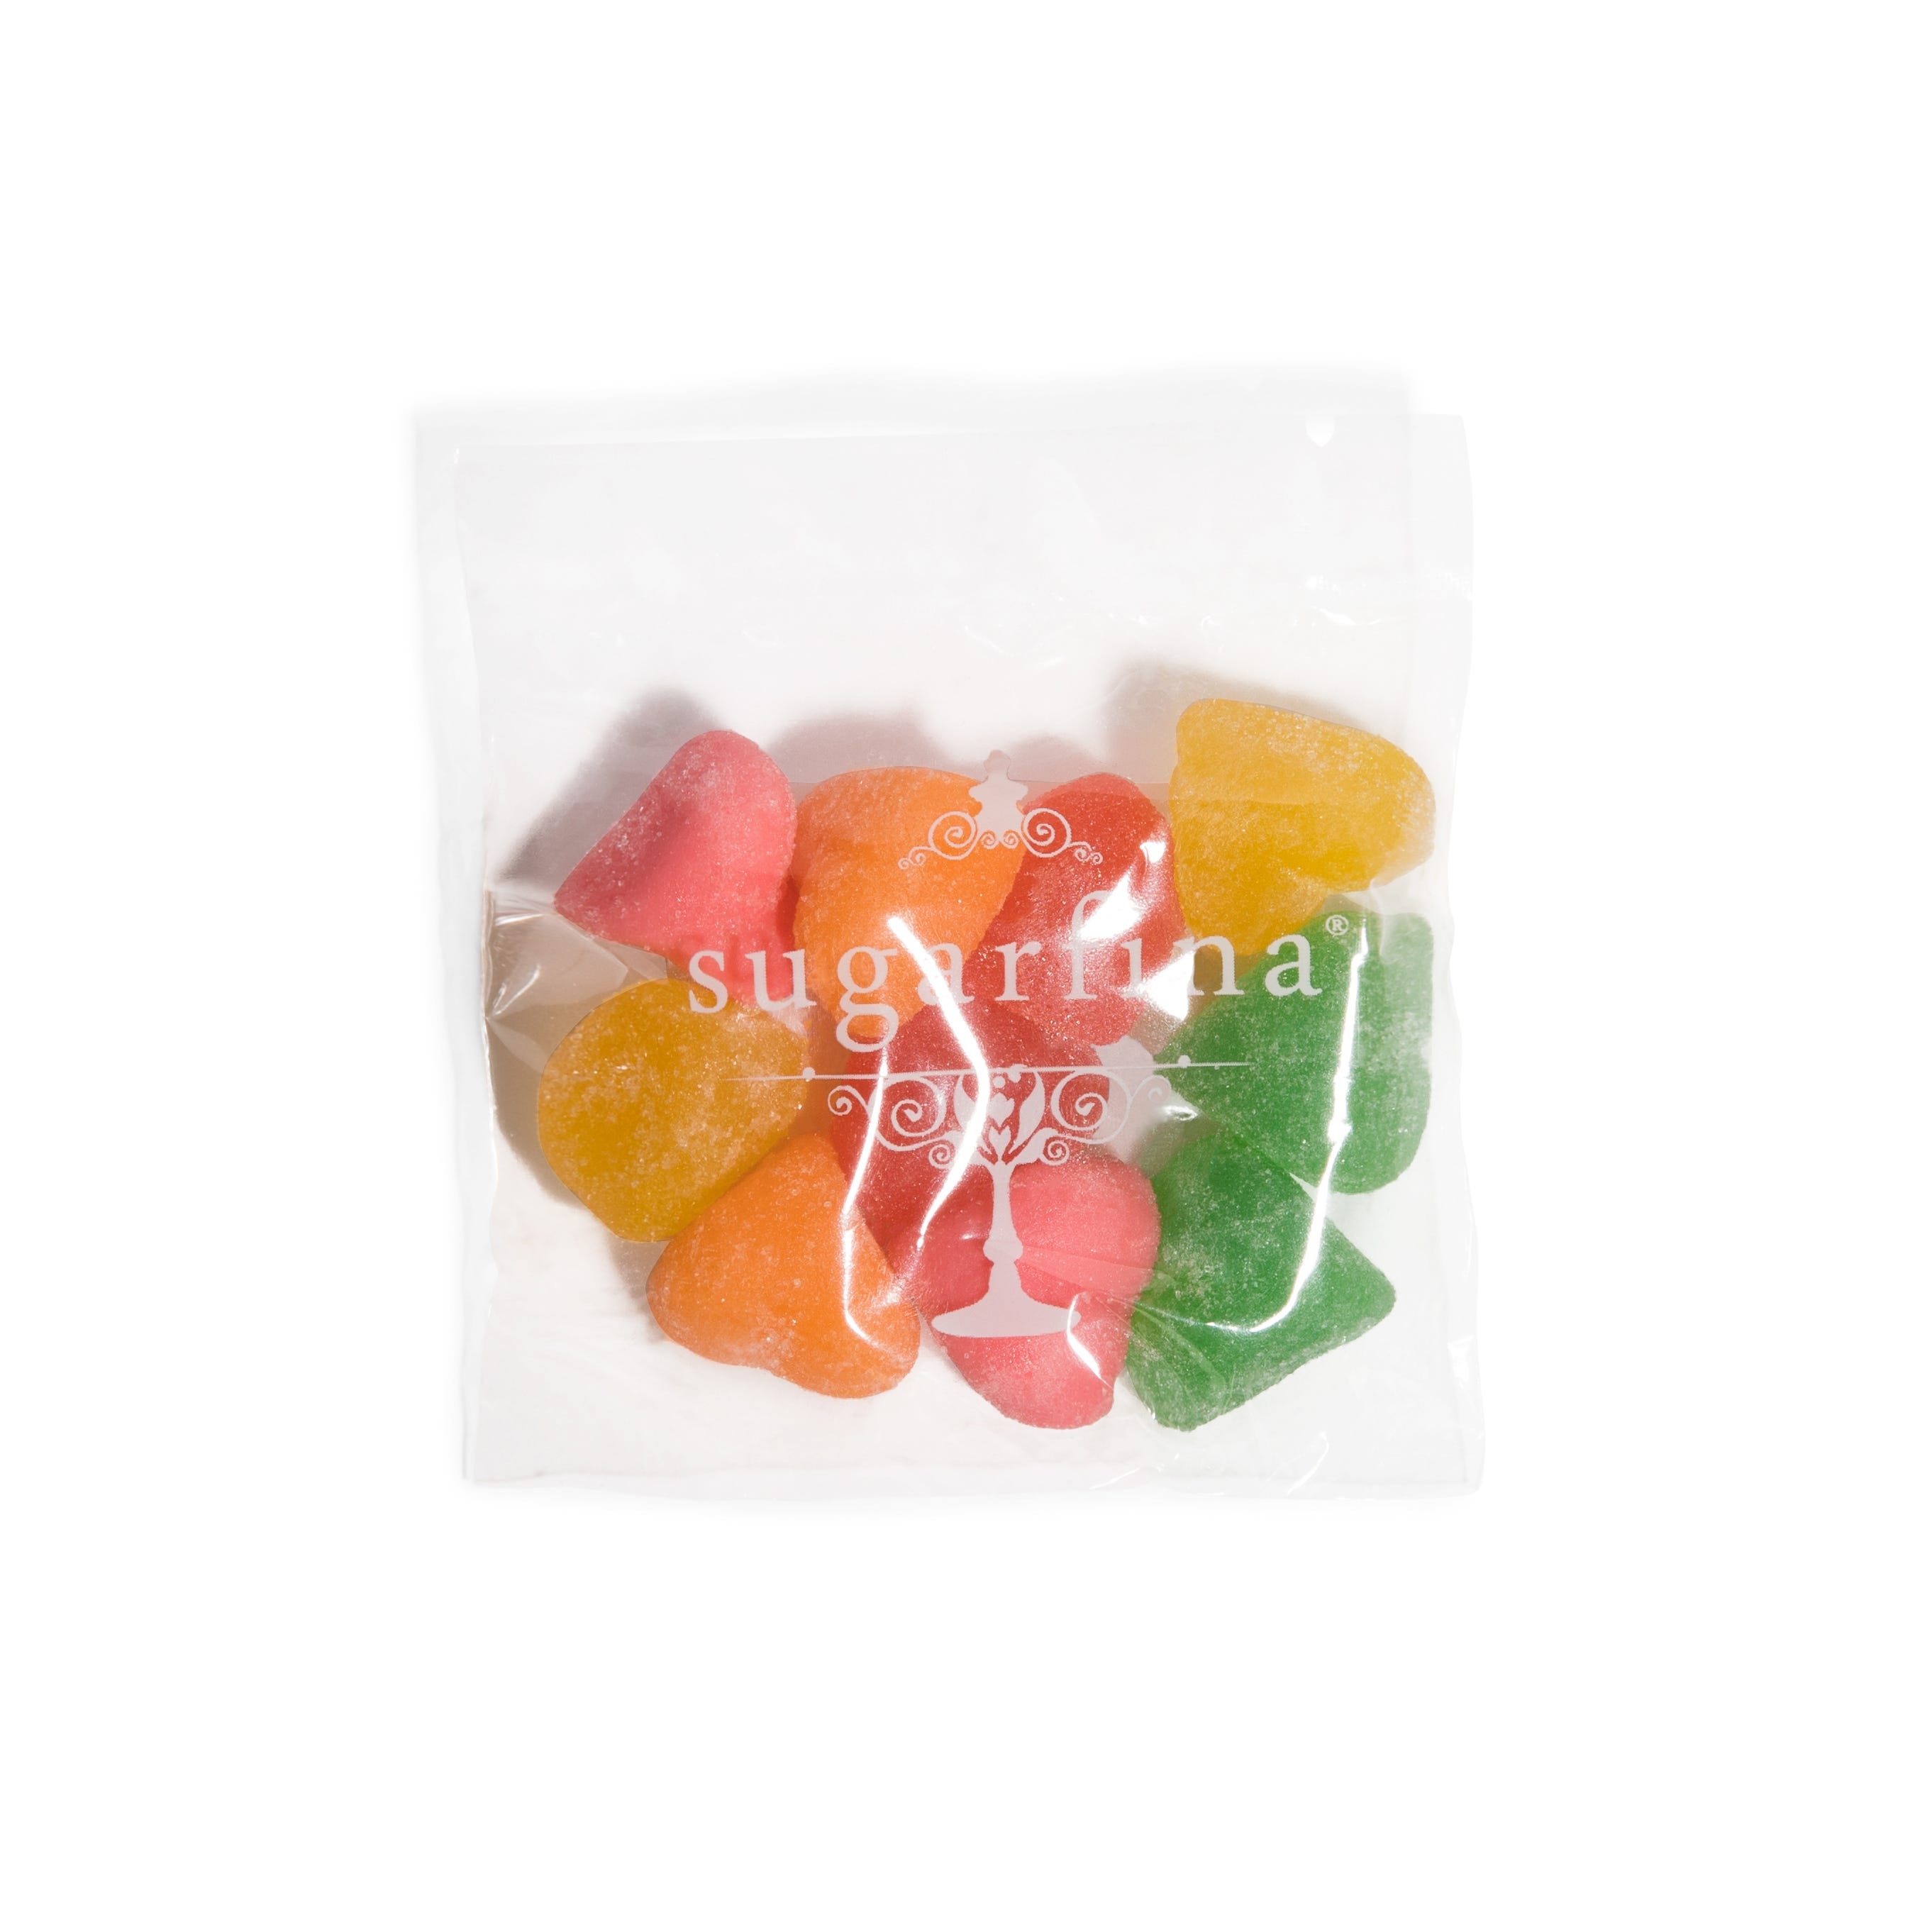 Super Sour Hearts - Taster